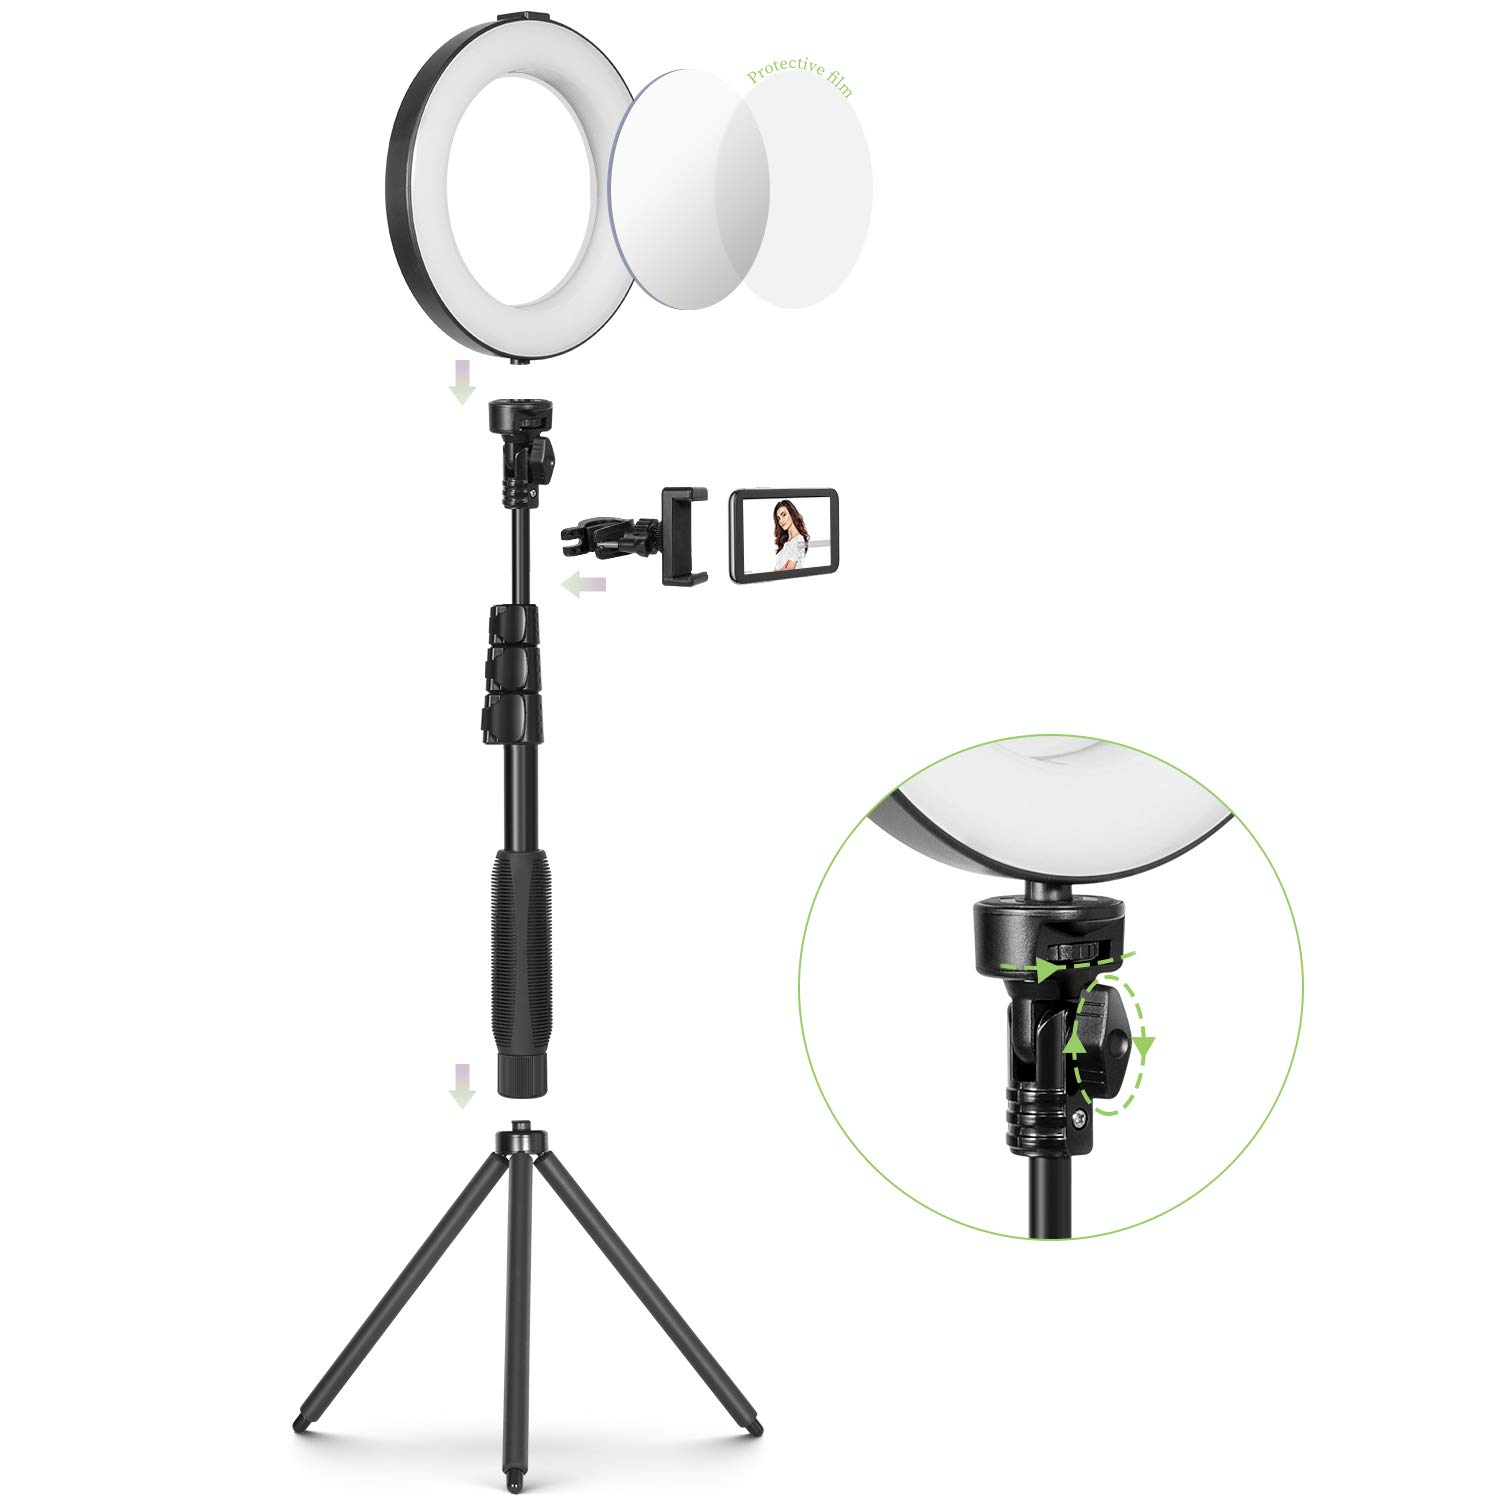 8'' Ring Light with Mirror Tripod Stand & Cell Phone Holder for Live Stream/Makeup, Mini Led Camera Ringlight for YouTube Video/Photography Compatible with iPhone Xs Max XR Android by MACTREM (Image #5)